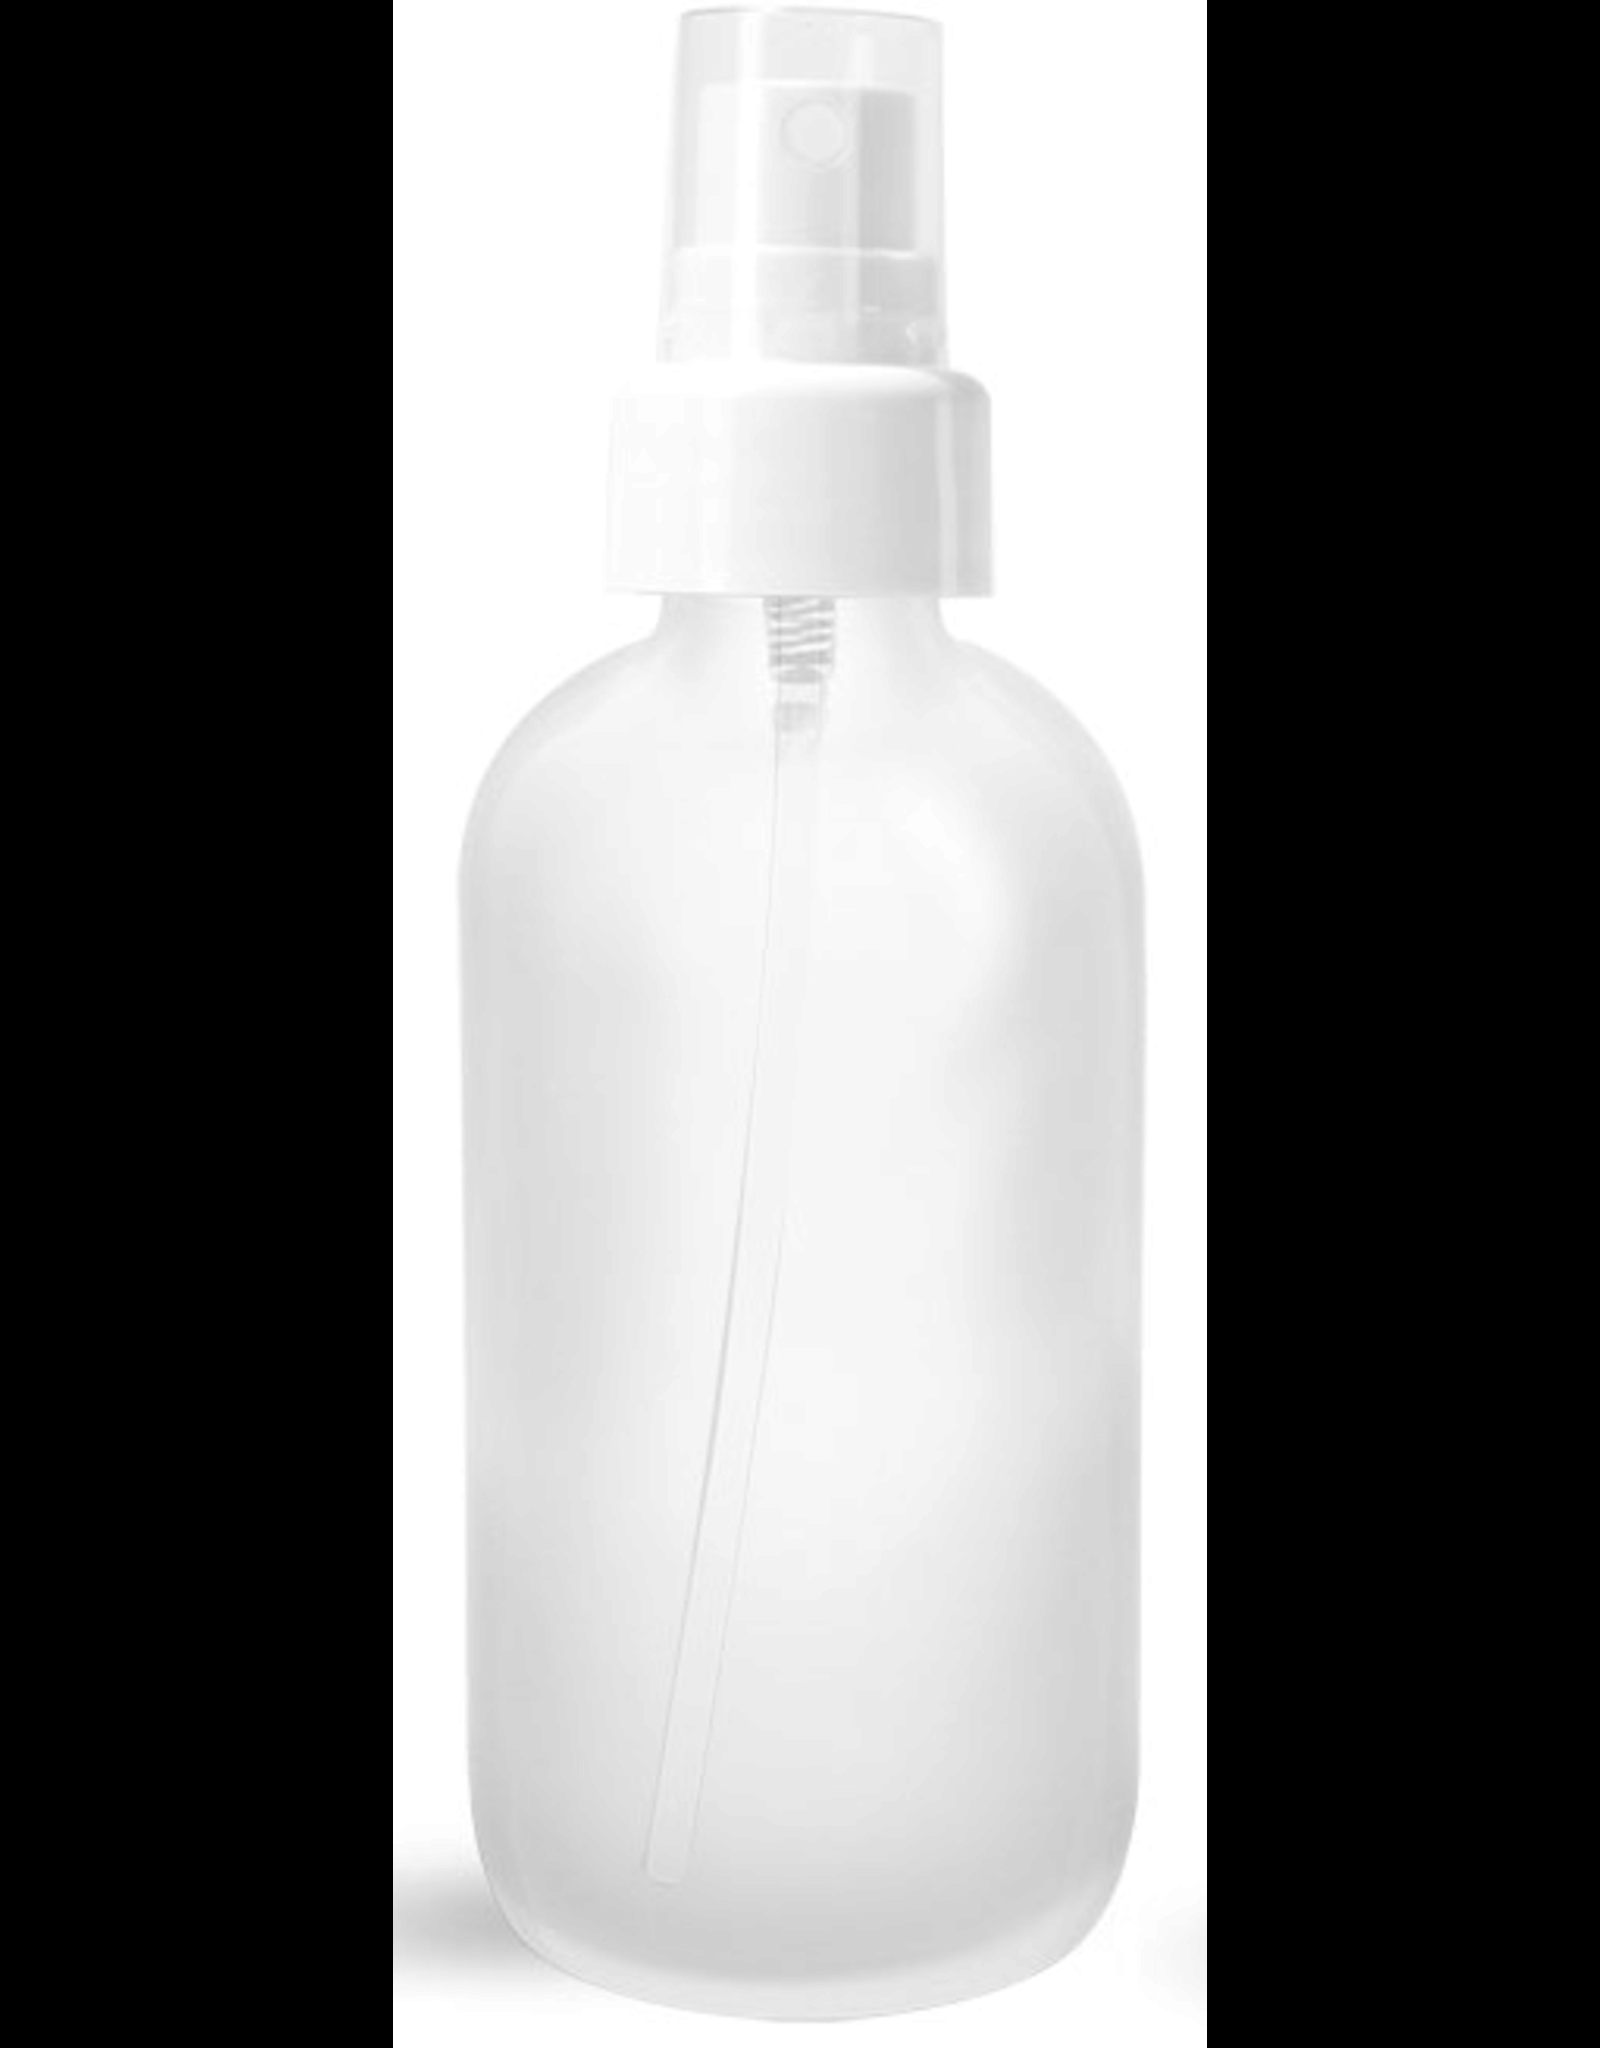 Garden City Essentials Spray Bottle 4 oz